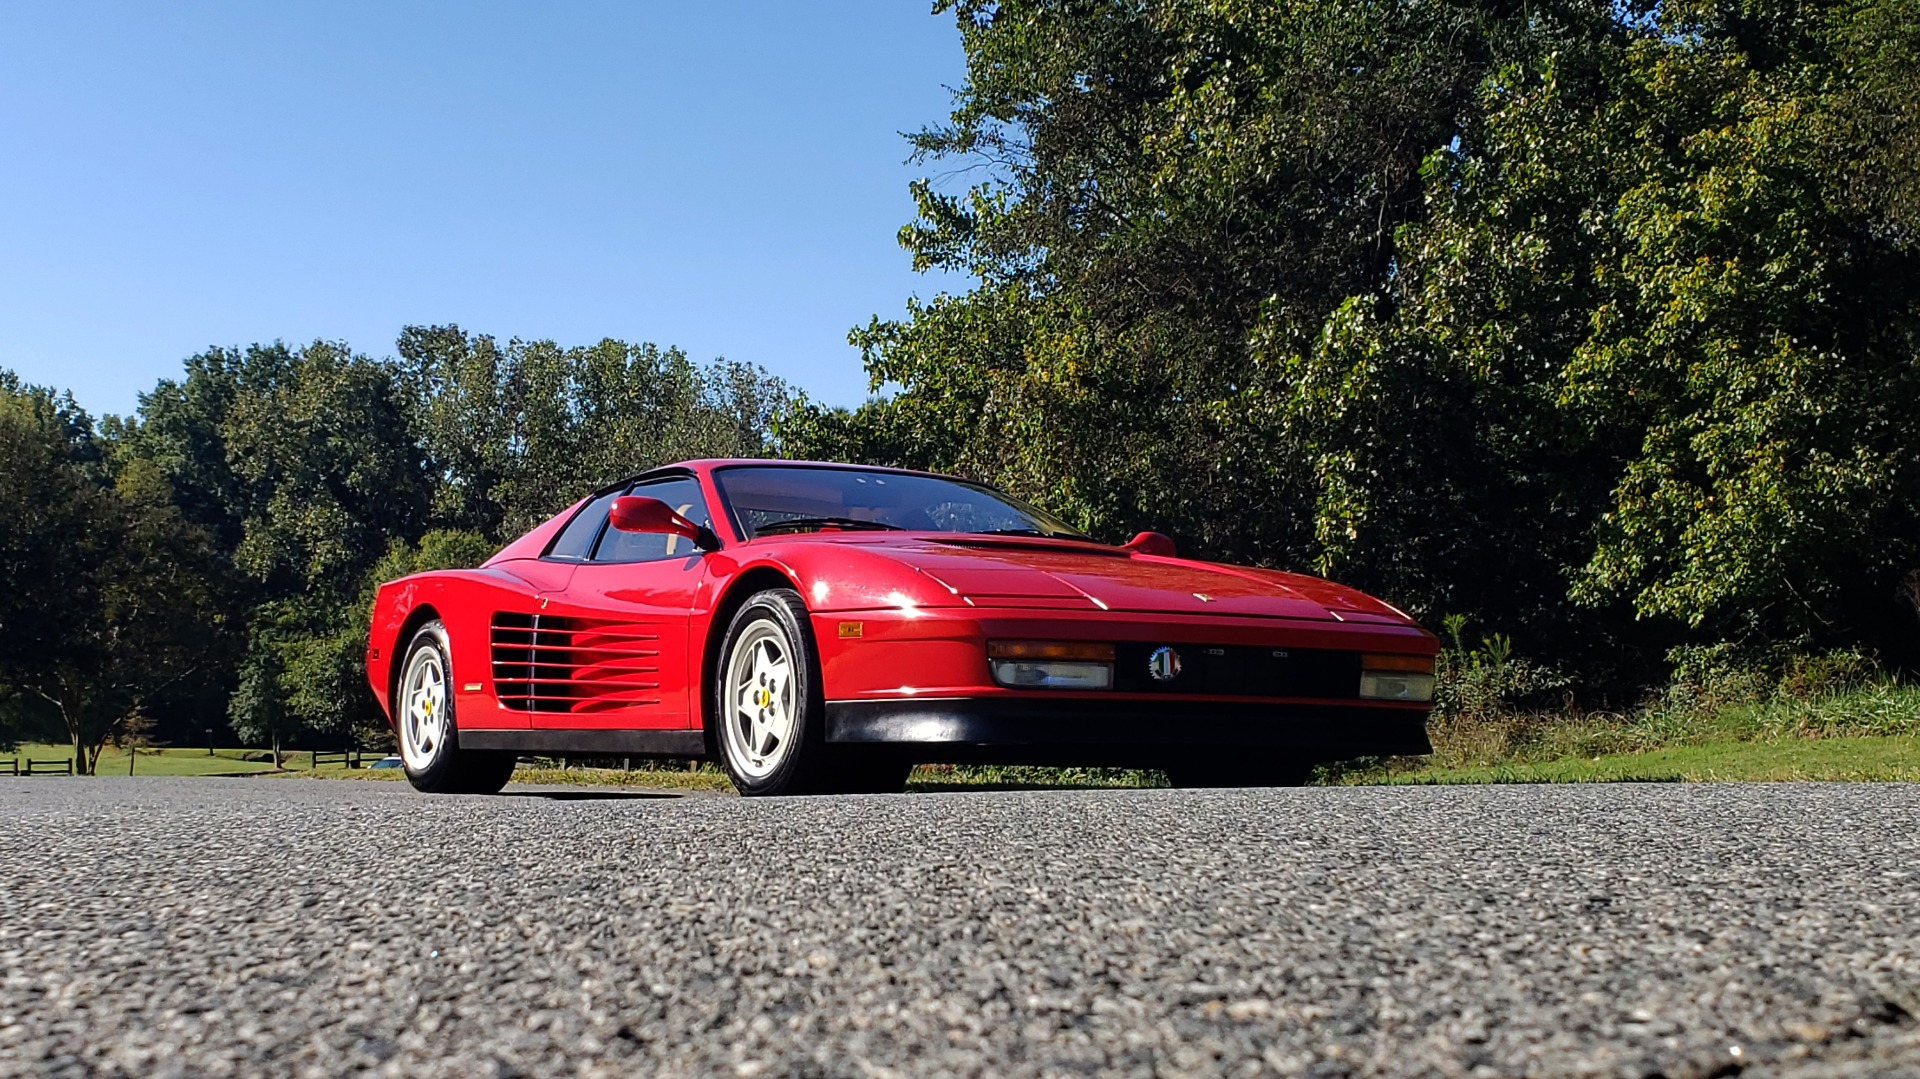 Used 1988 Ferrari TESTAROSSA COUPE / 4.9L FLAT-12 / 5-SPEED MANUAL / LOW MILES SUPER CLEAN for sale $128,999 at Formula Imports in Charlotte NC 28227 13